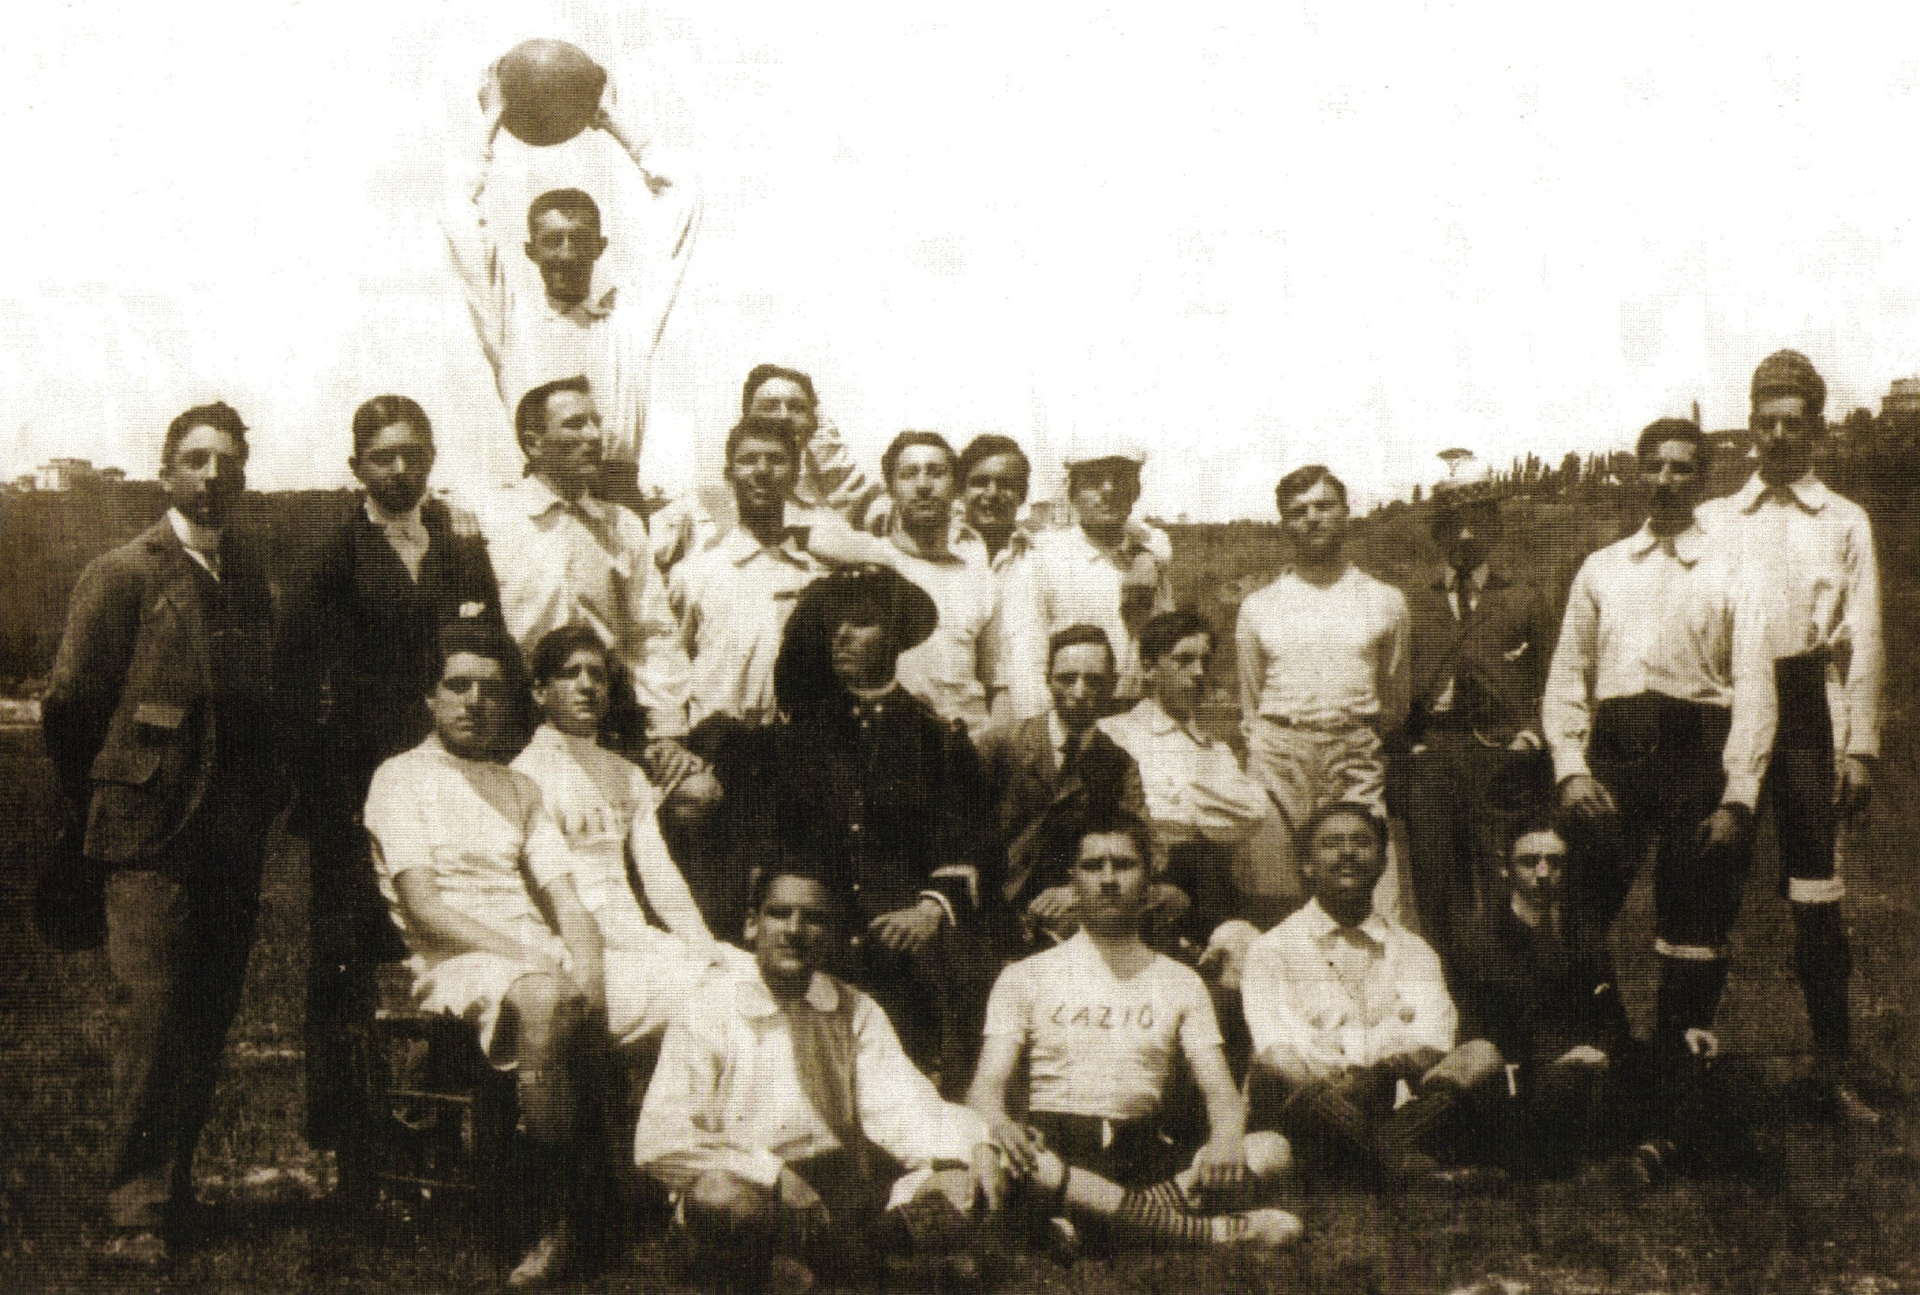 Lazio was founded in 1900